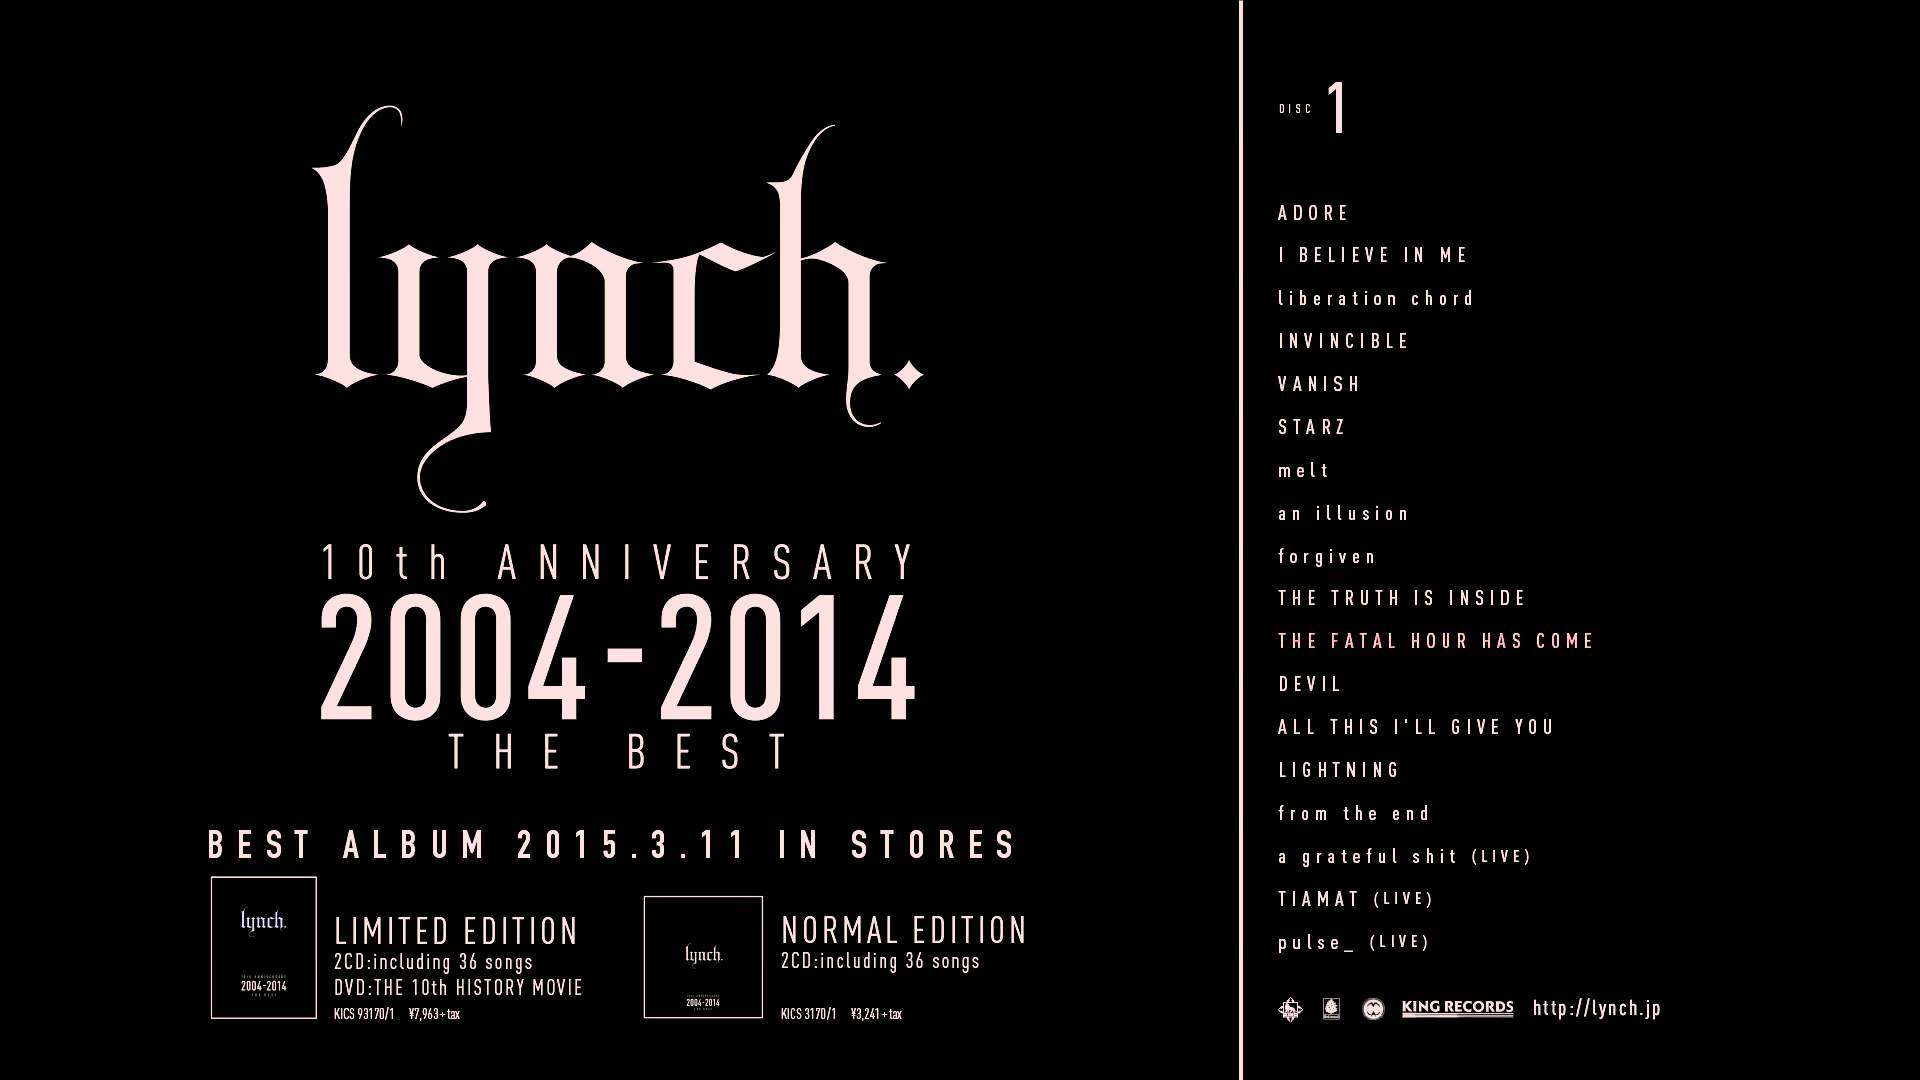 「10th ANNIVERSARY 2004-2014 THE BEST」試聴disc1 HD - YouTube